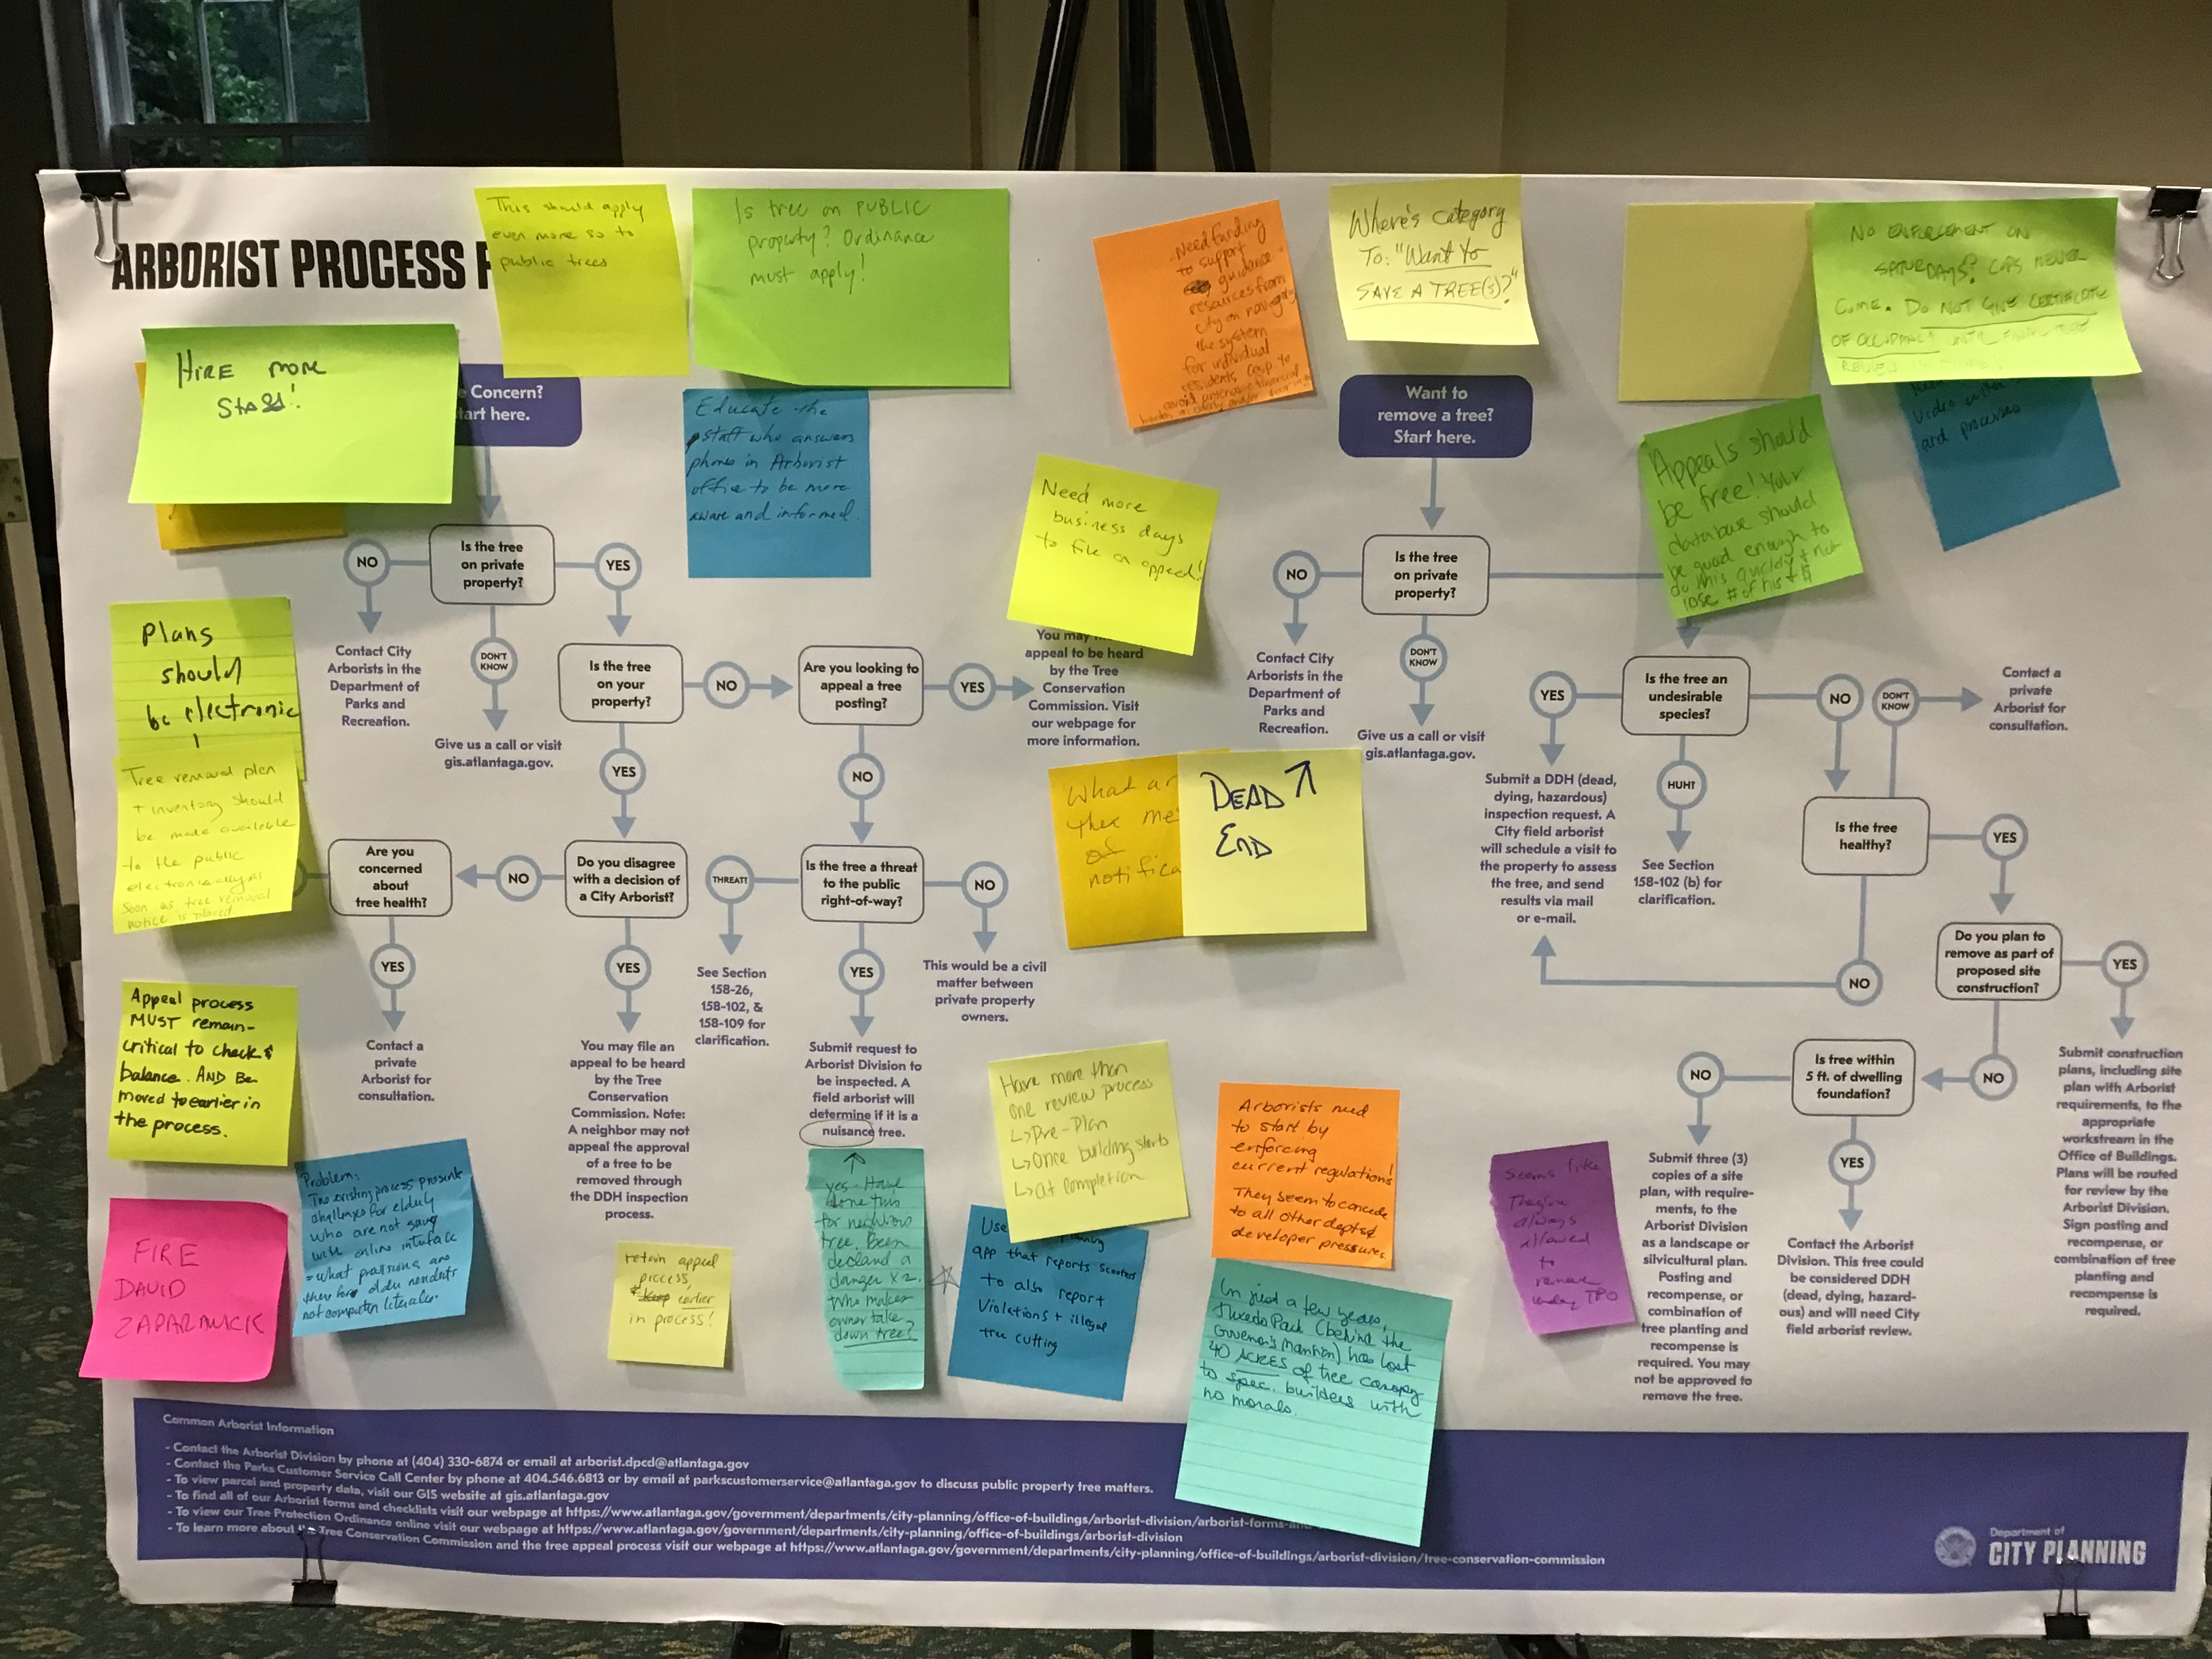 arborist process flow -  sticky note board